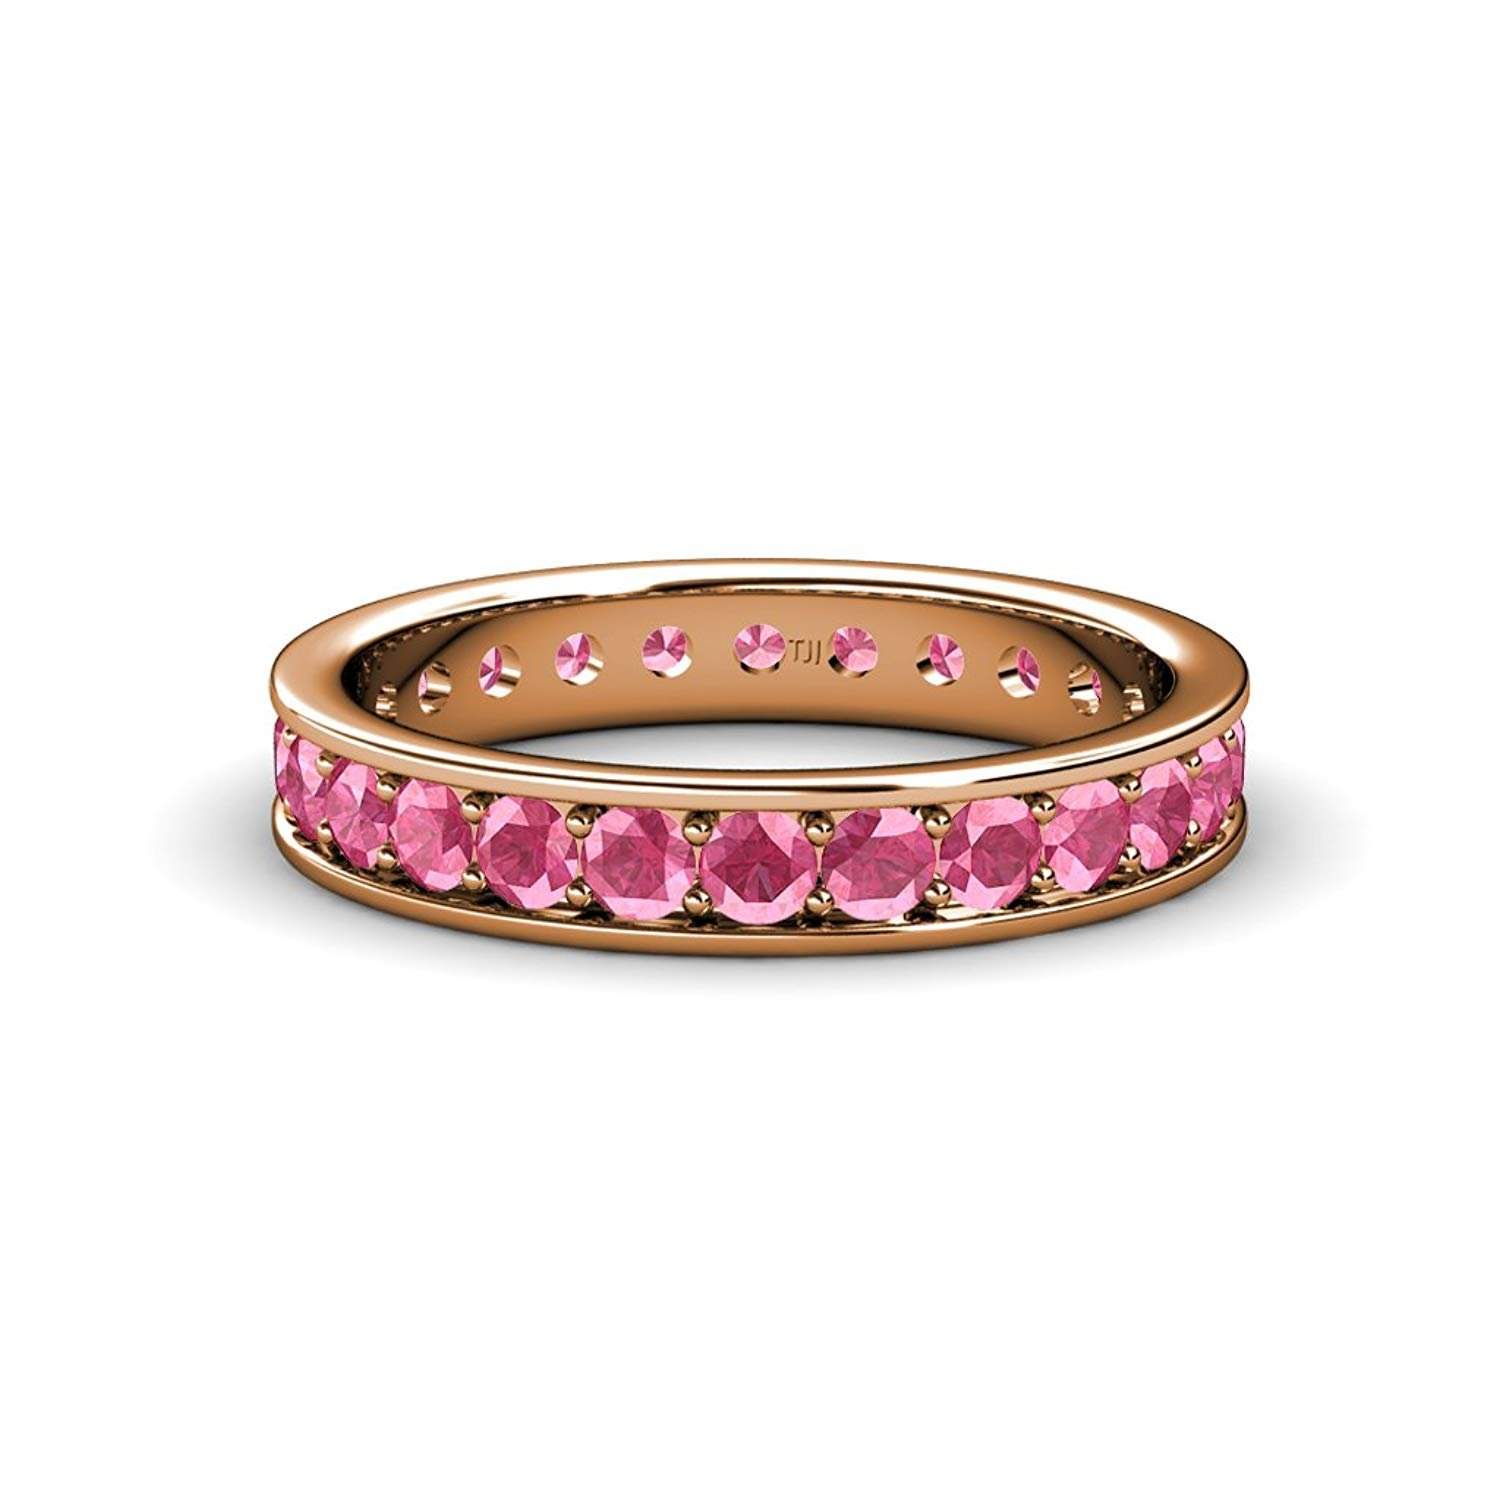 Pink Tourmaline Channel with Prong Set Eternity Band 0.74ct tw to 0.88ct tw in 14K Yellow Gold.size 5.5 by TriJewels